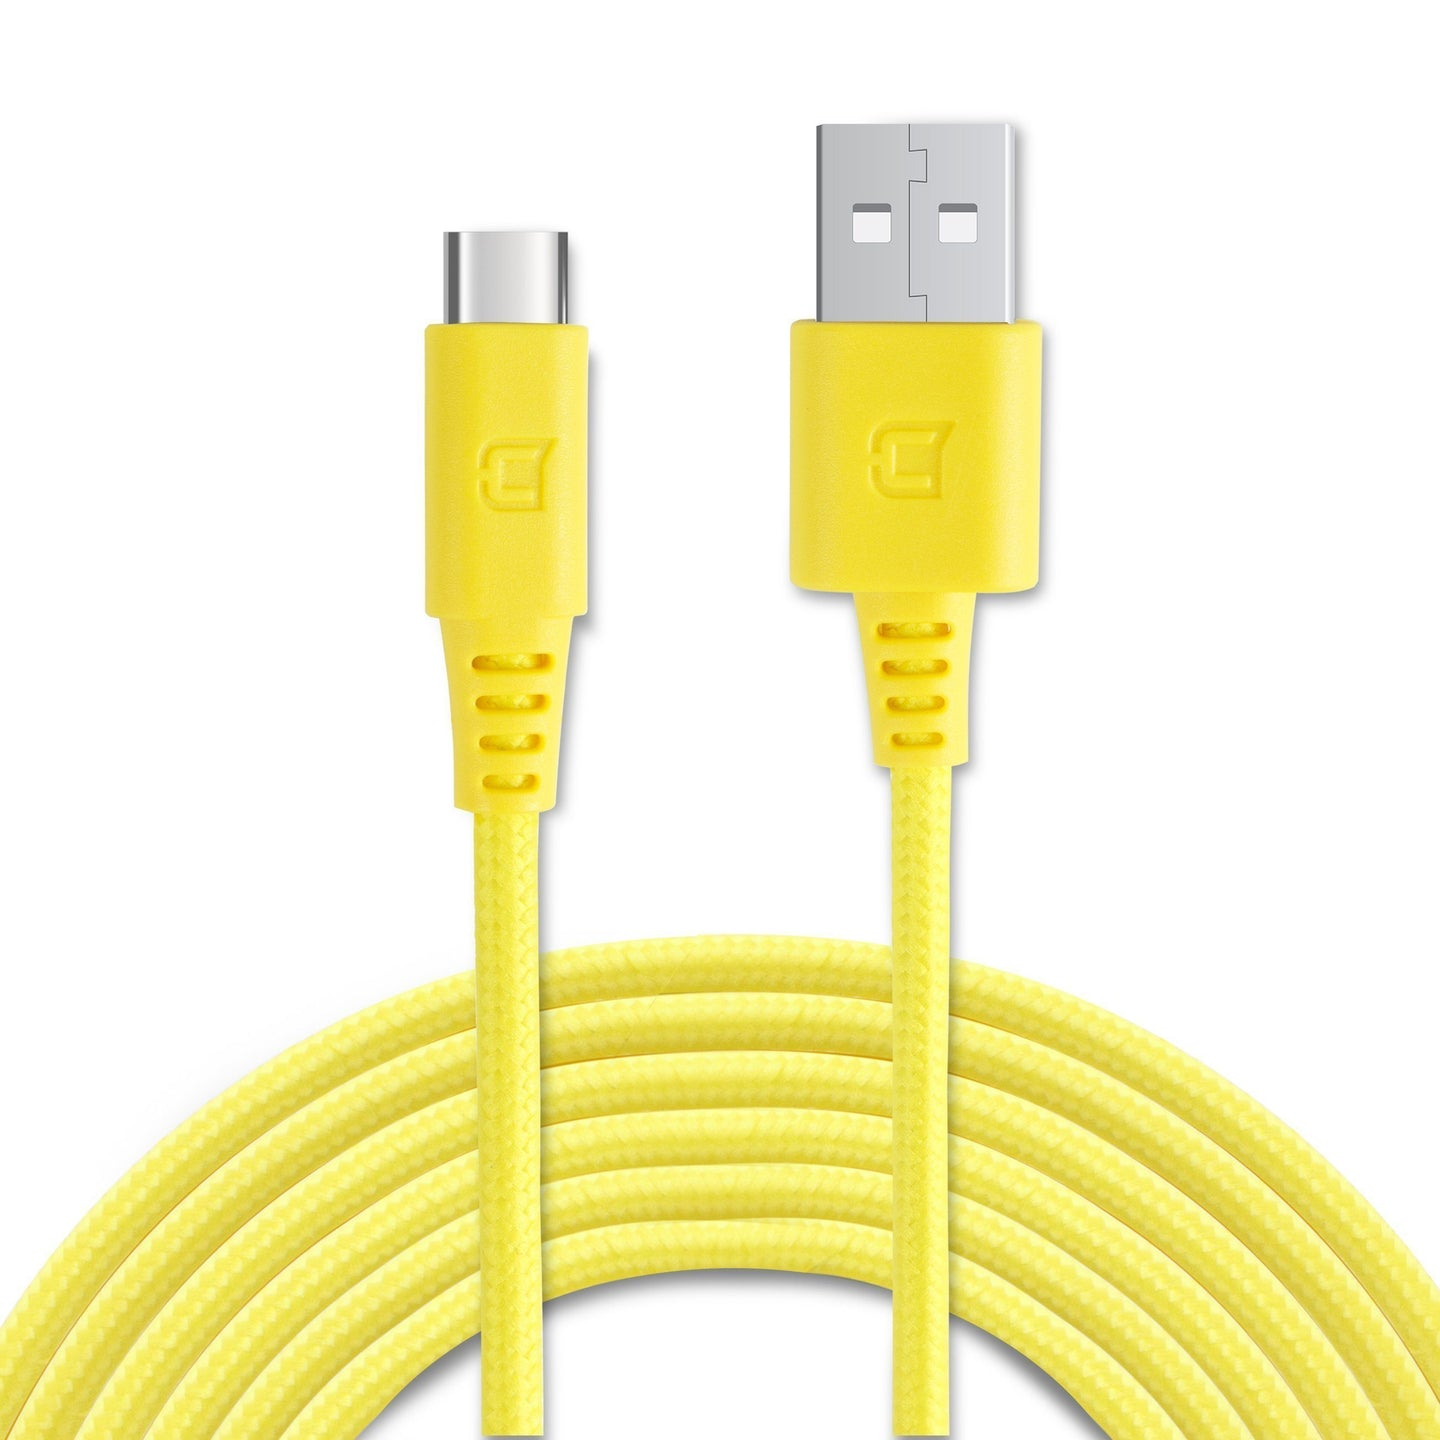 Braided Type C Cable - Lemon - 2 Meter